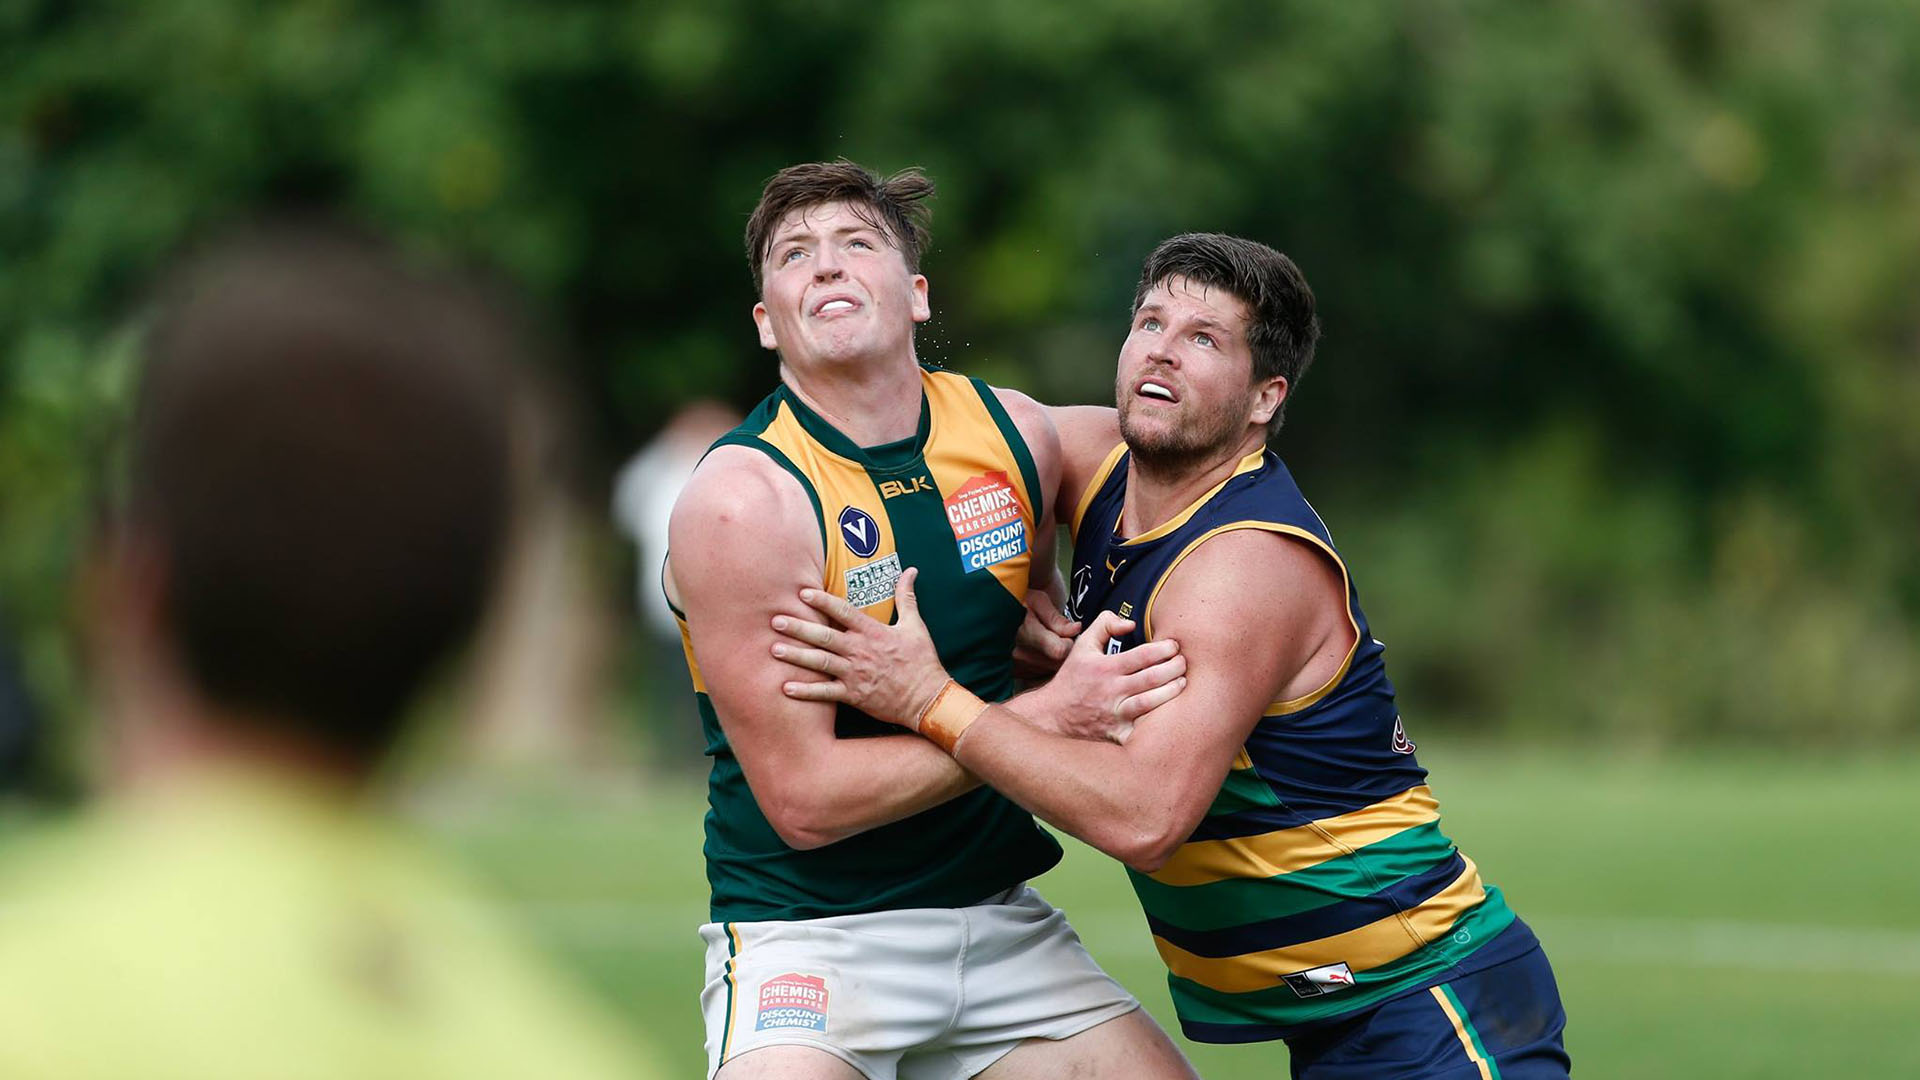 OTGFC Website_Image 16.jpg